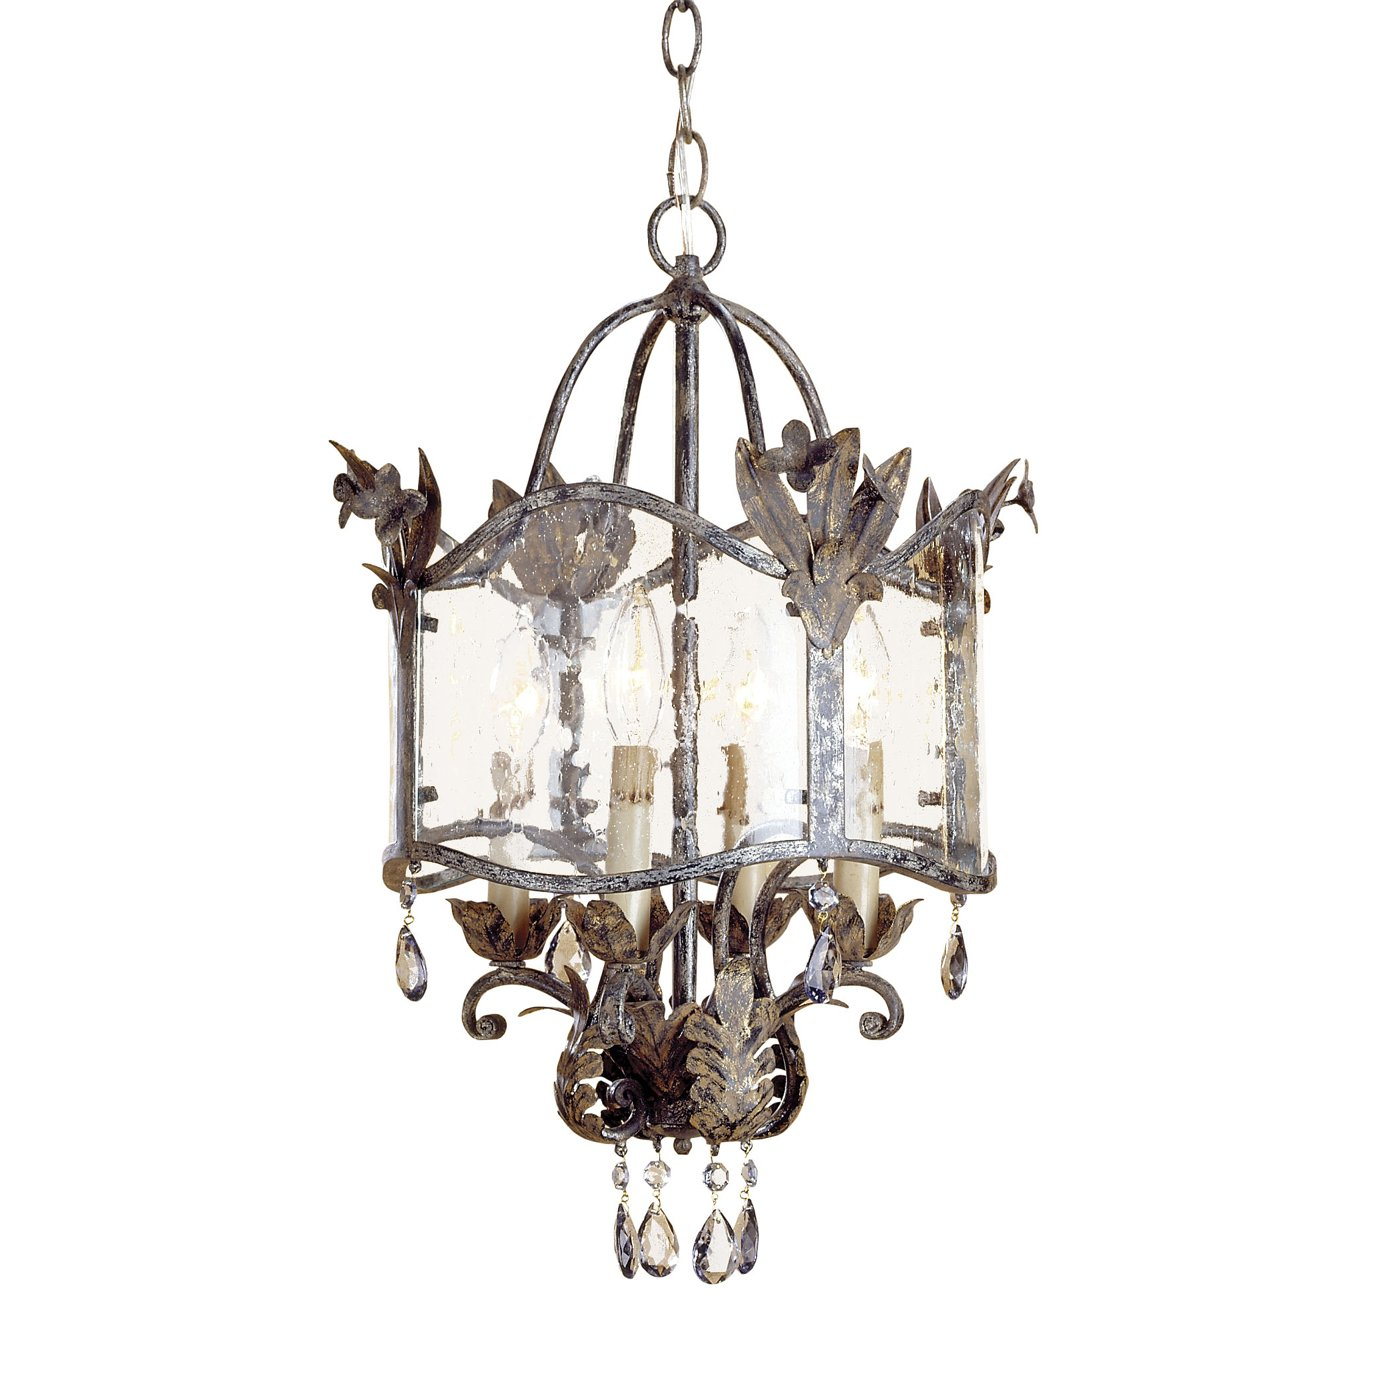 Peace, Love & Decorating Adds Currey & Company Lighting To